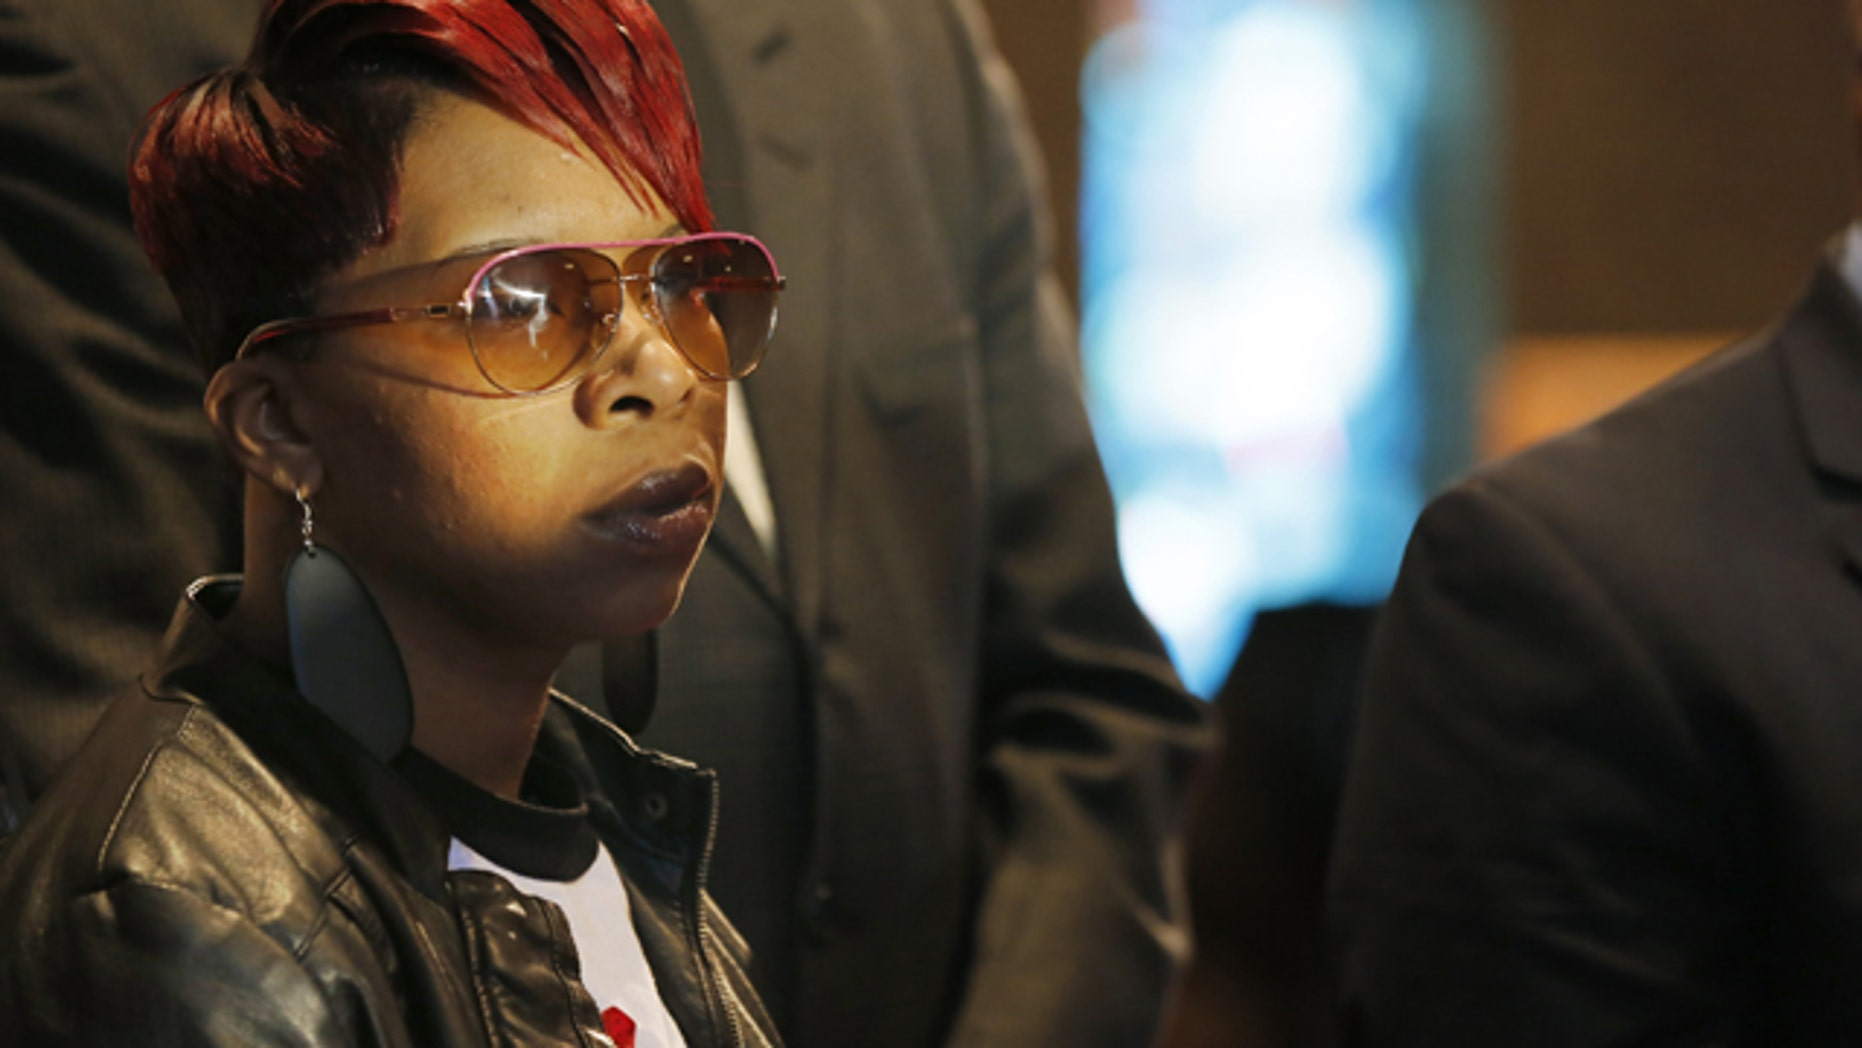 FILE - In this March 5, 2015, file photo, Lesley McSpadden, mother of Michael Brown Jr., listens to the family attorney during a news conference in Dellwood, Mo. Lawyers for the parents of Brown, the unarmed, black 18-year-old who was fatally shot by a white police officer in a St. Louis suburb, announced Wednesday, April 22, 2015, that they planned to file a civil lawsuit the following day against the city of Ferguson. (AP Photo/Charles Rex Arbogast, File)